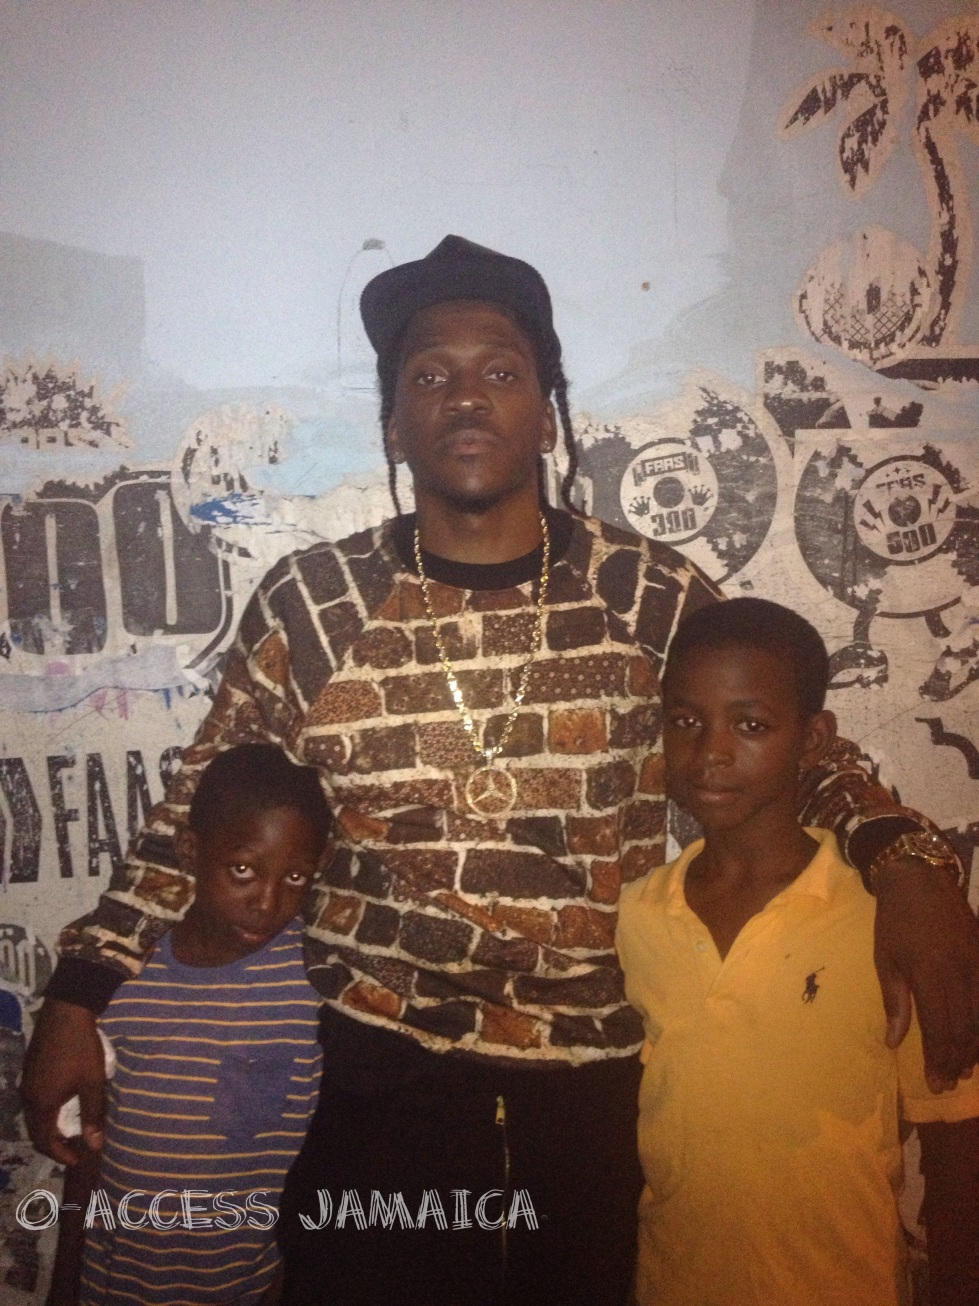 Pusha T hangs out with some kids in downtown Kingston.